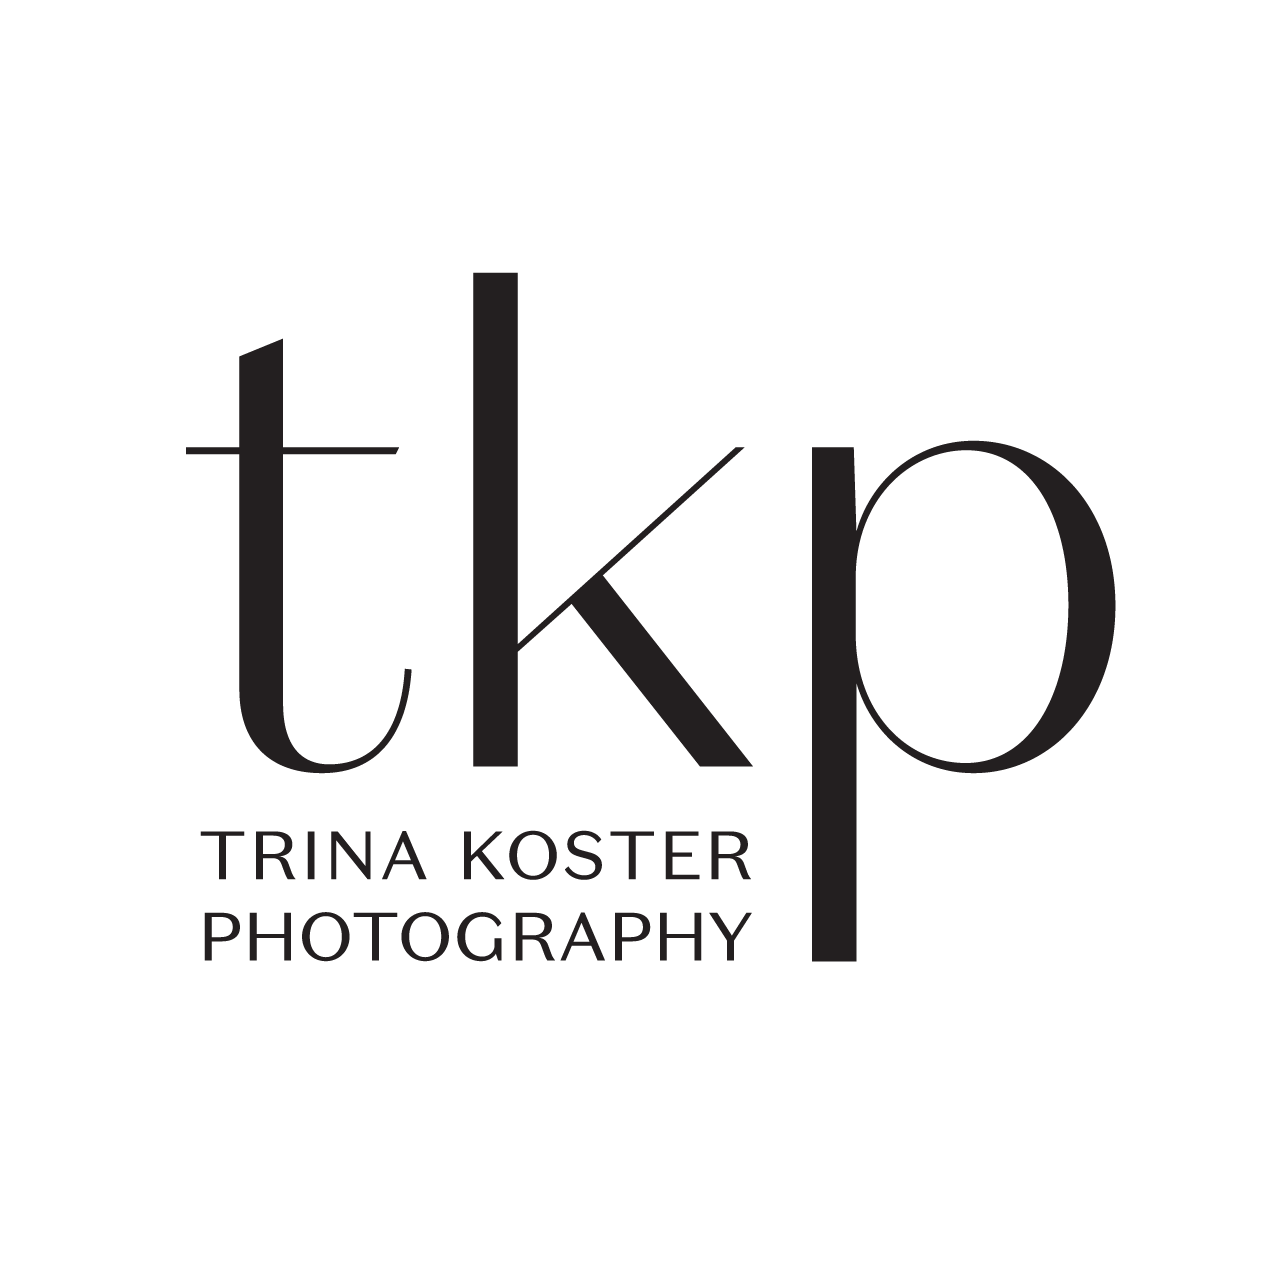 Trina Koster Photography